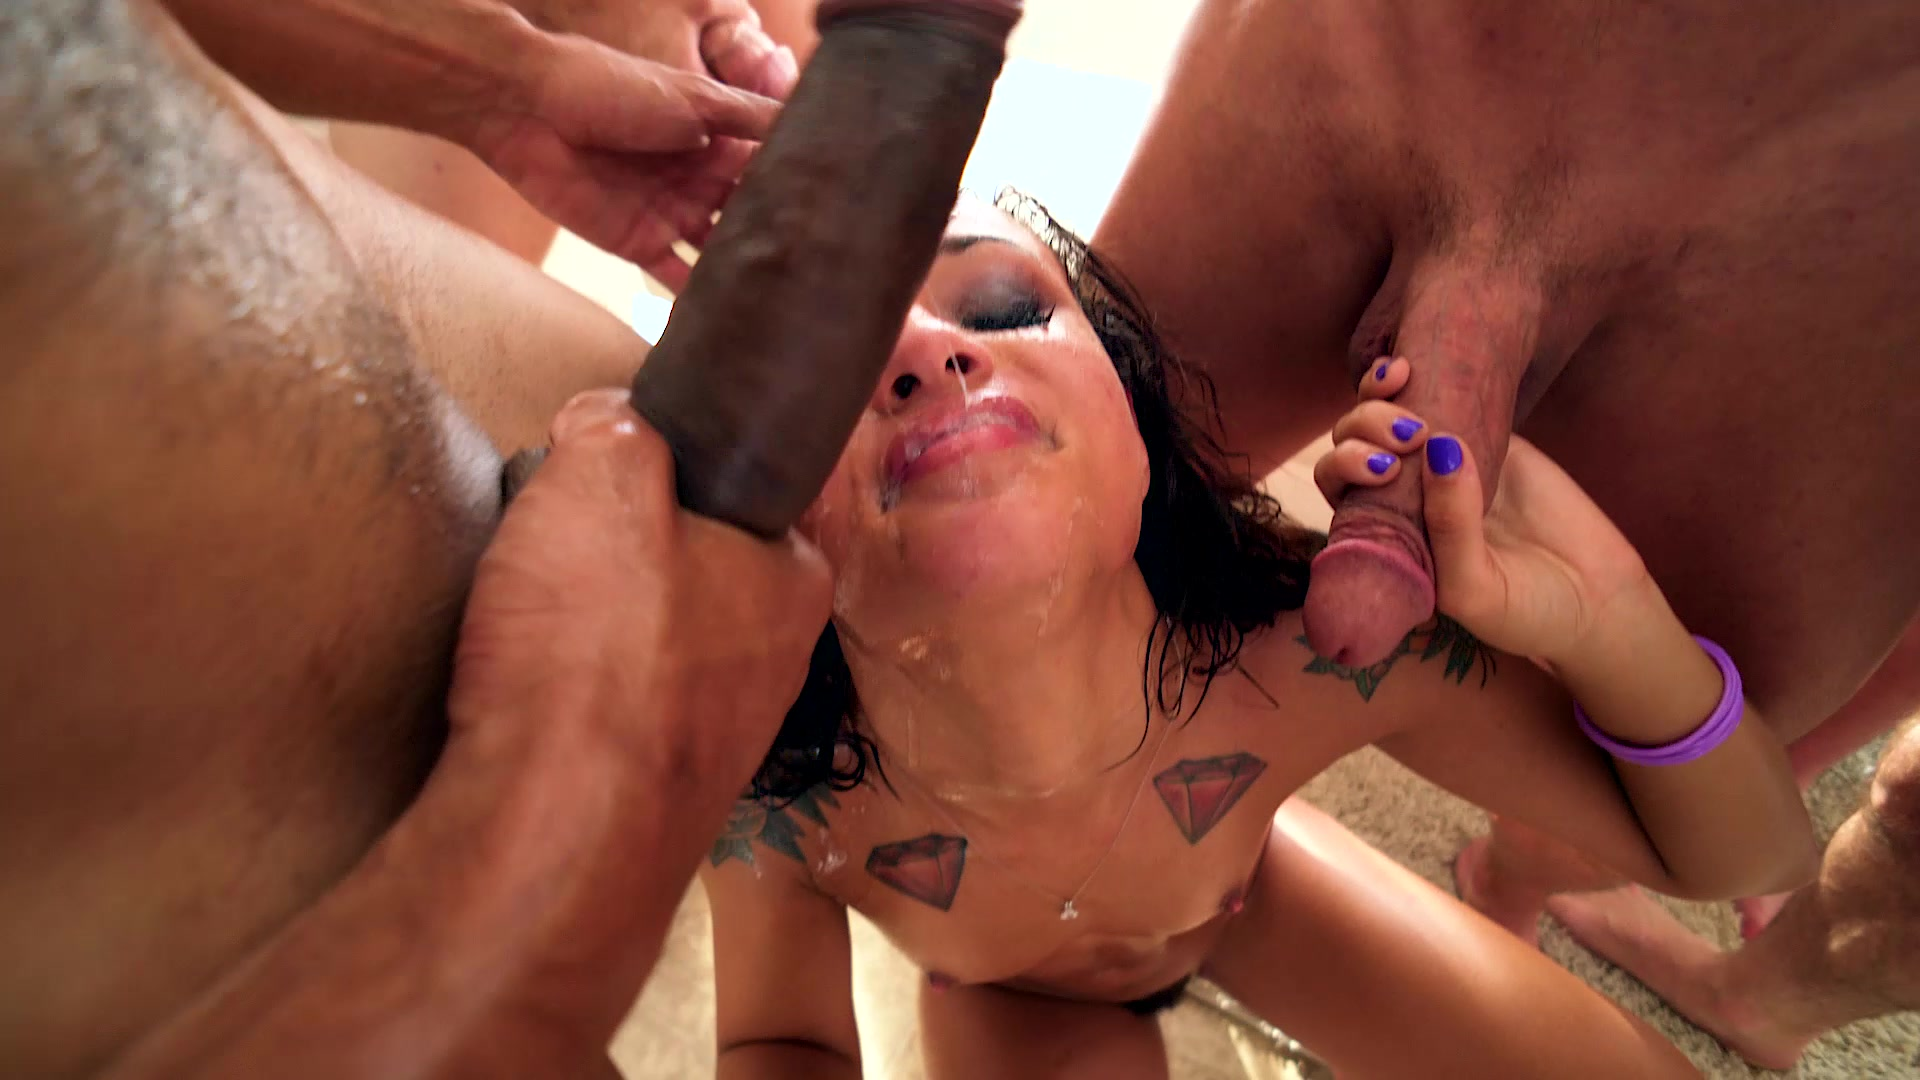 Scene with Holly Hendrix - image 14 out of 20